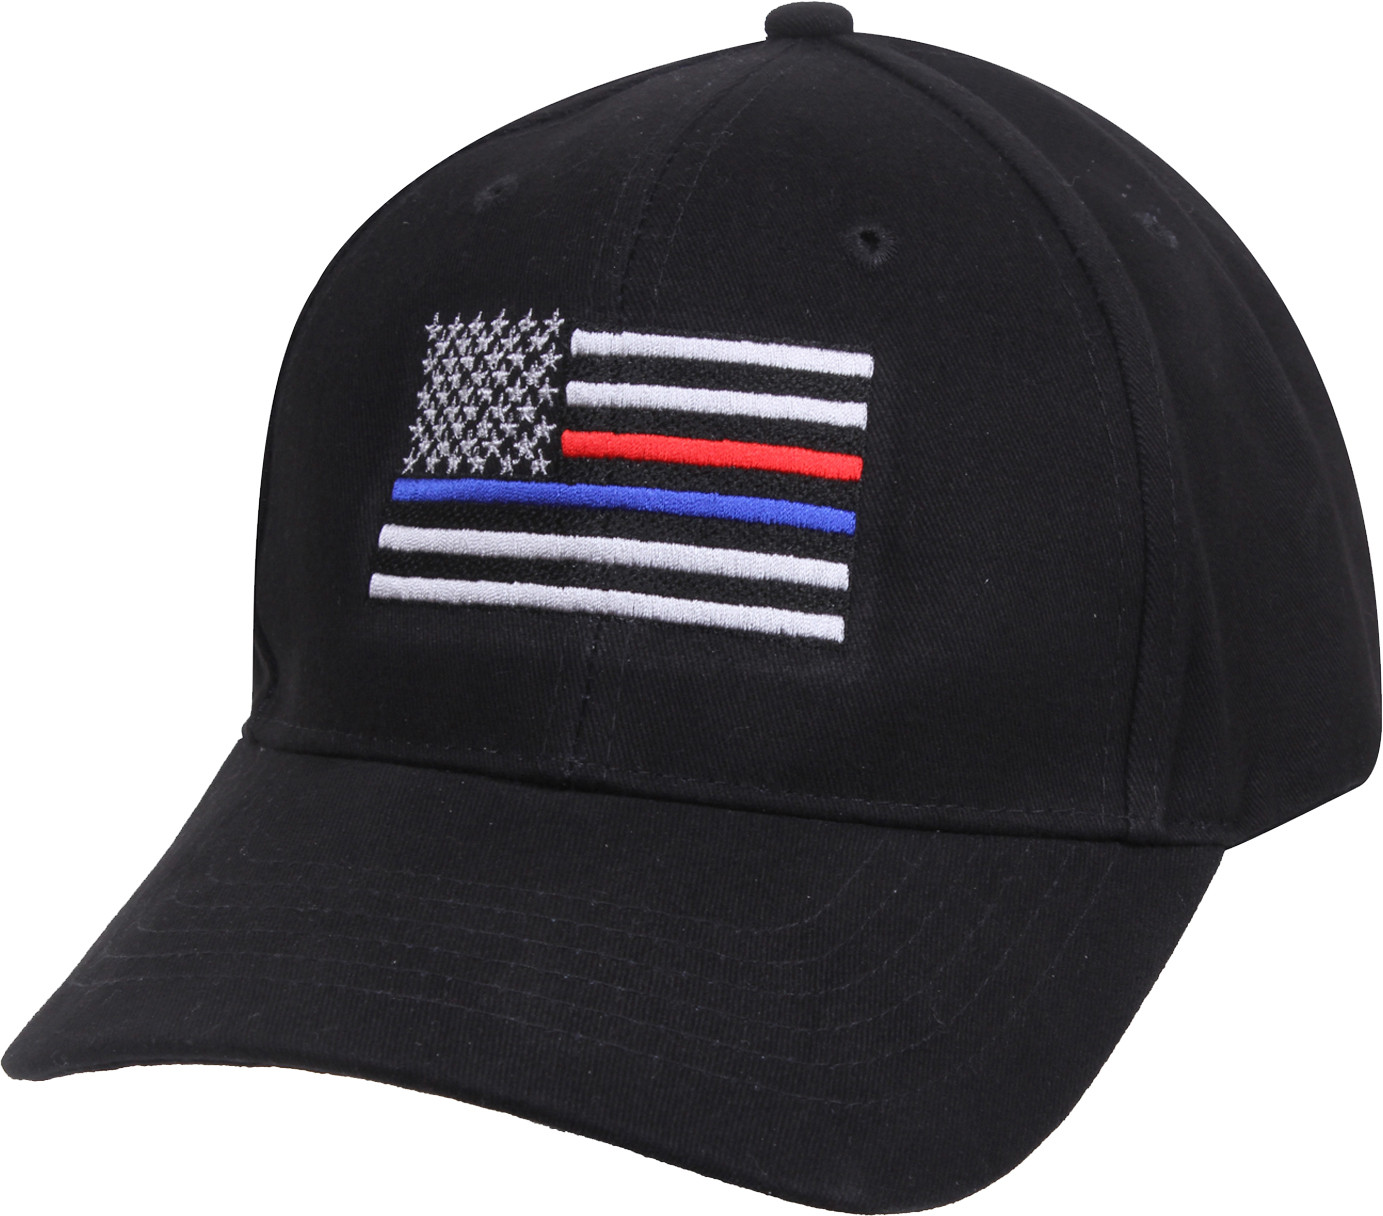 Black Thin Blue   Red Line US Flag Police   Firefighters Baseball Cap 0989107a0b8